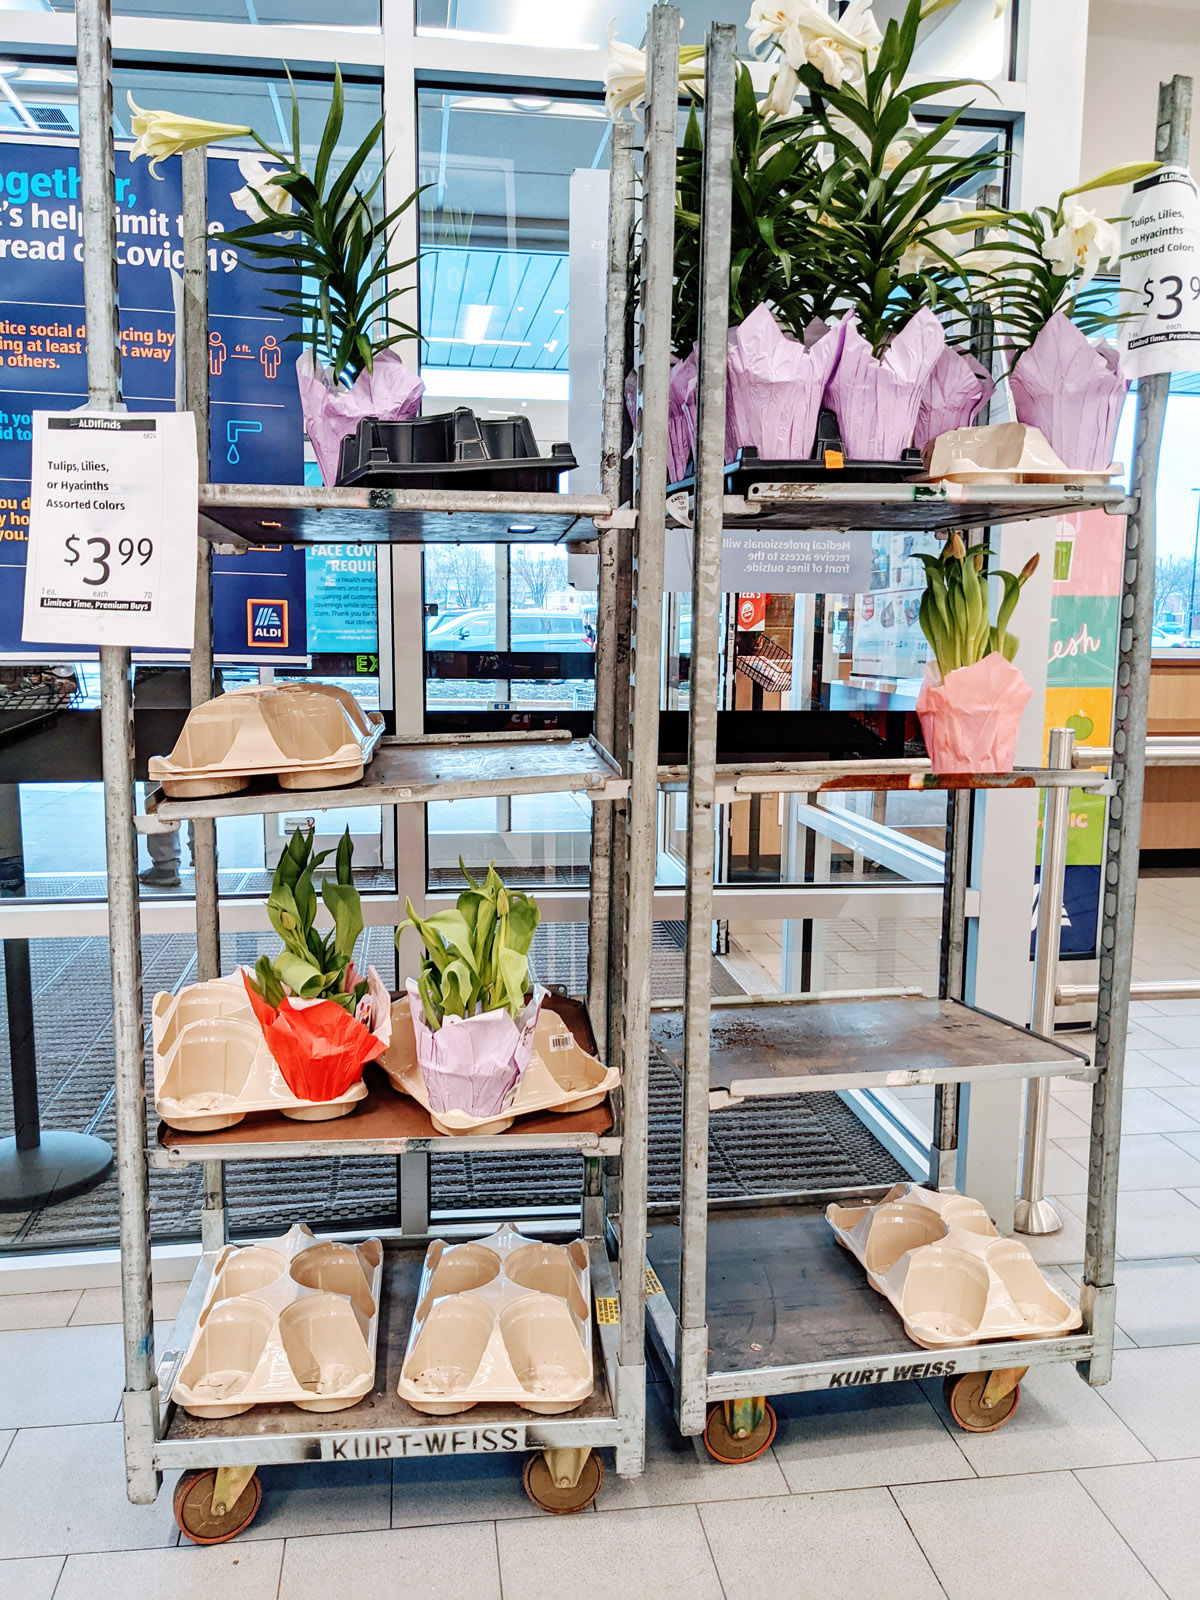 Aldi Live Flowers Garden Plants Tulips, Lilies, Hyacinths at Pottstown Aldi on Shoemaker Road in April 2021